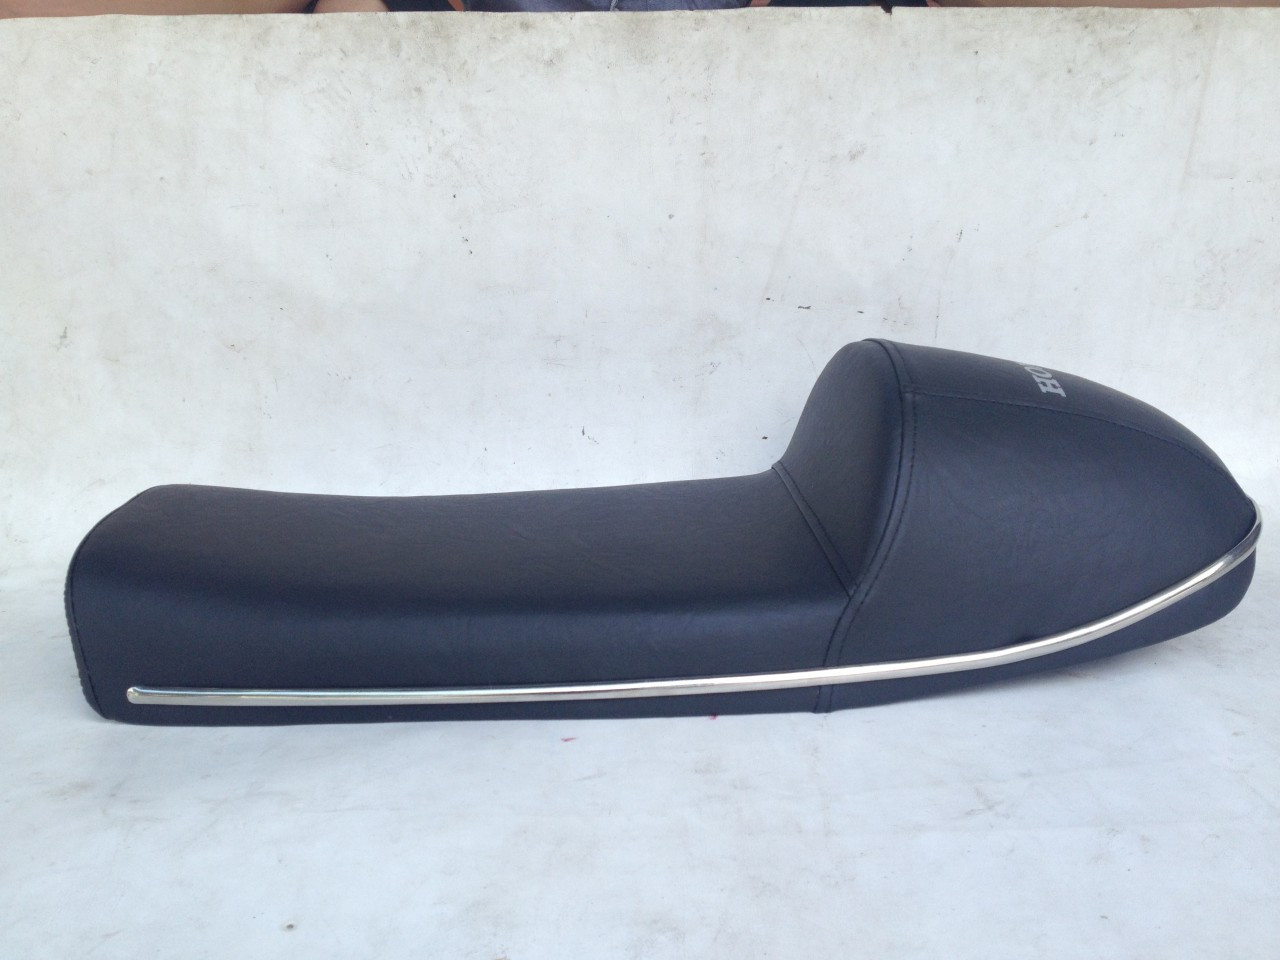 1969, 1970, 1971 Honda CB750 K0 and K1 complete cafe racer seat with chrome bars #4033